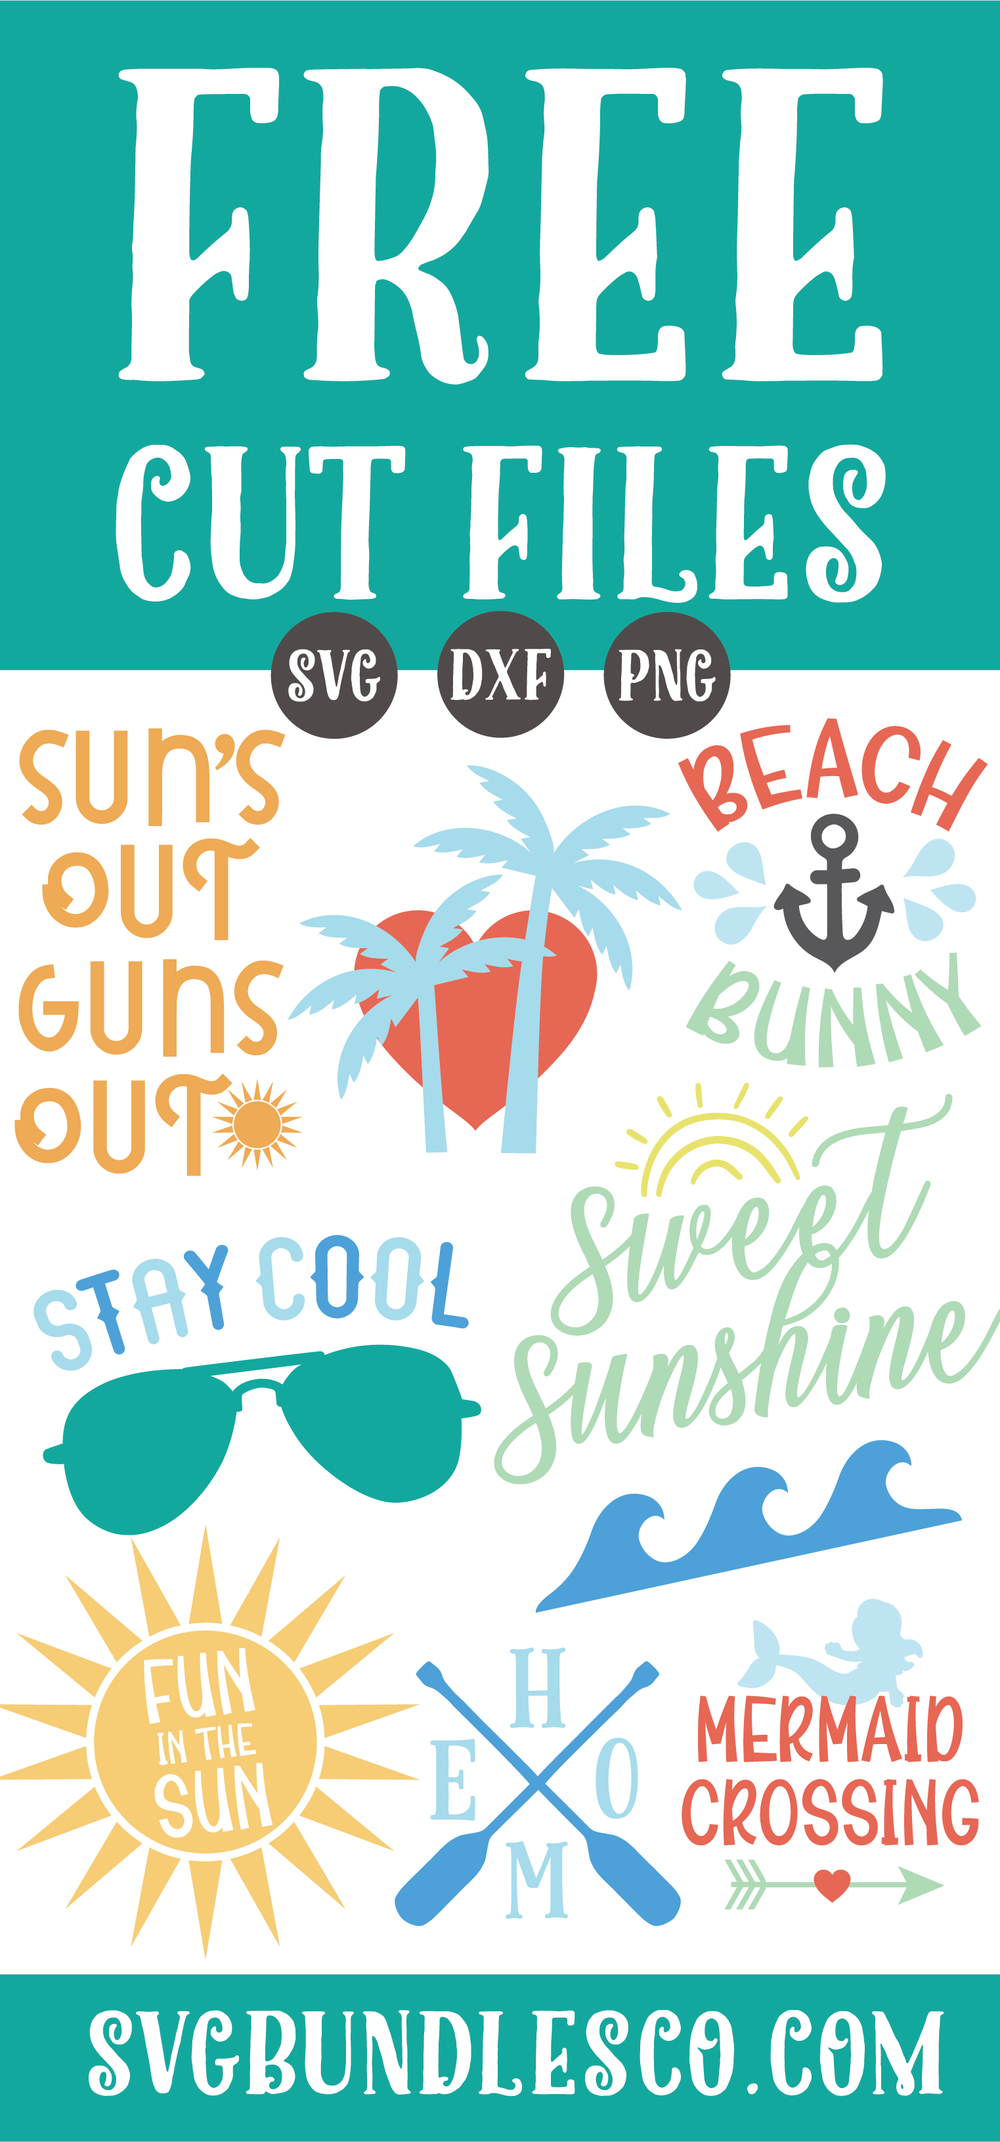 Pin on SVG files & bundles for Cricut & Silhouette